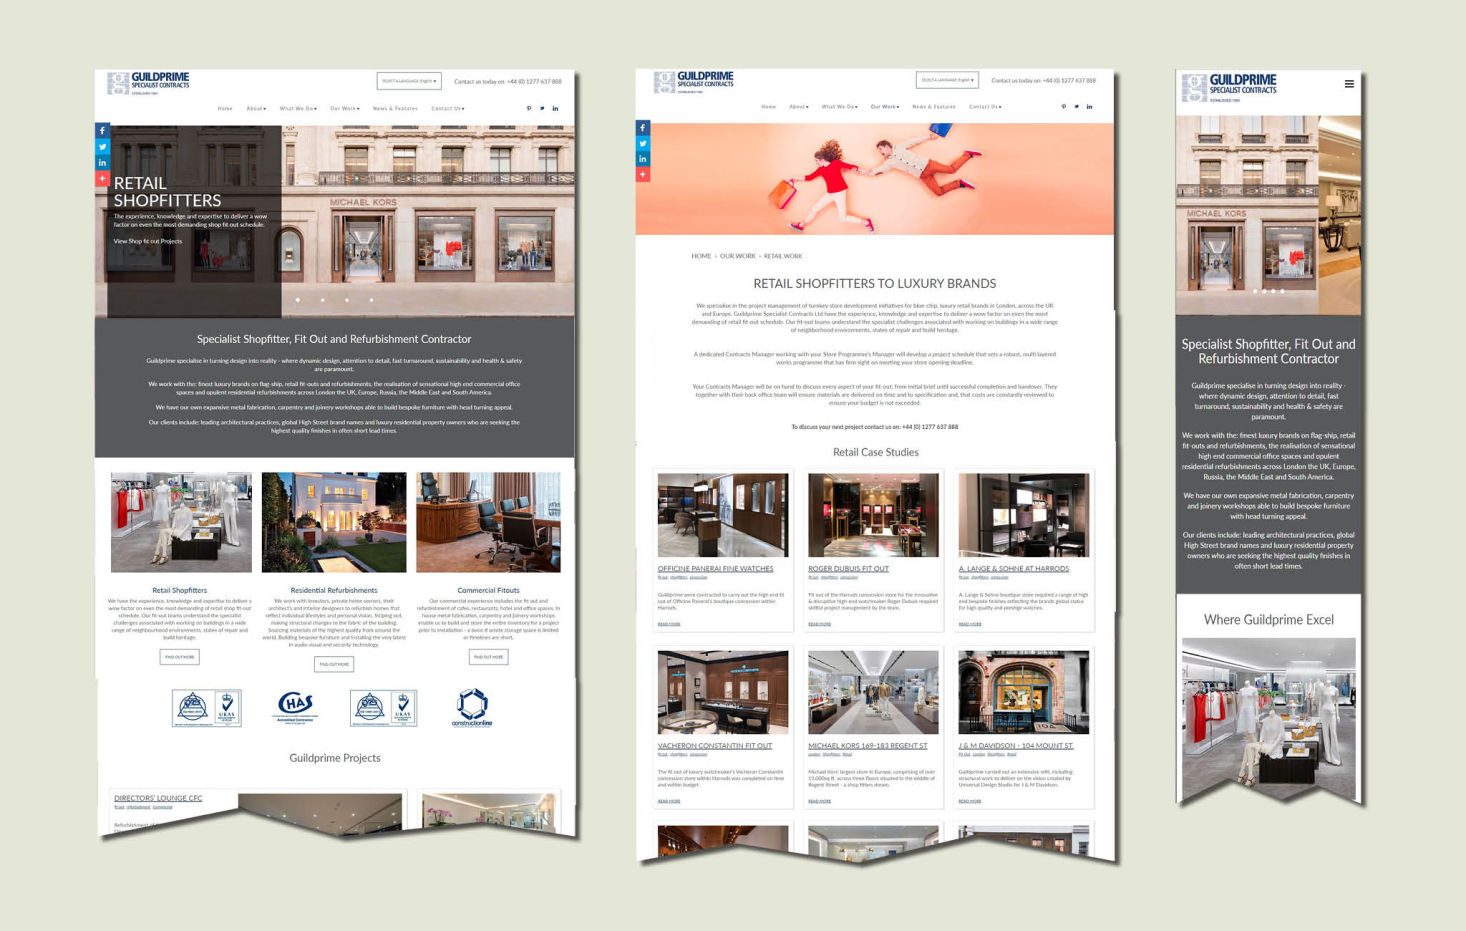 Examples of design for Guildprime's website